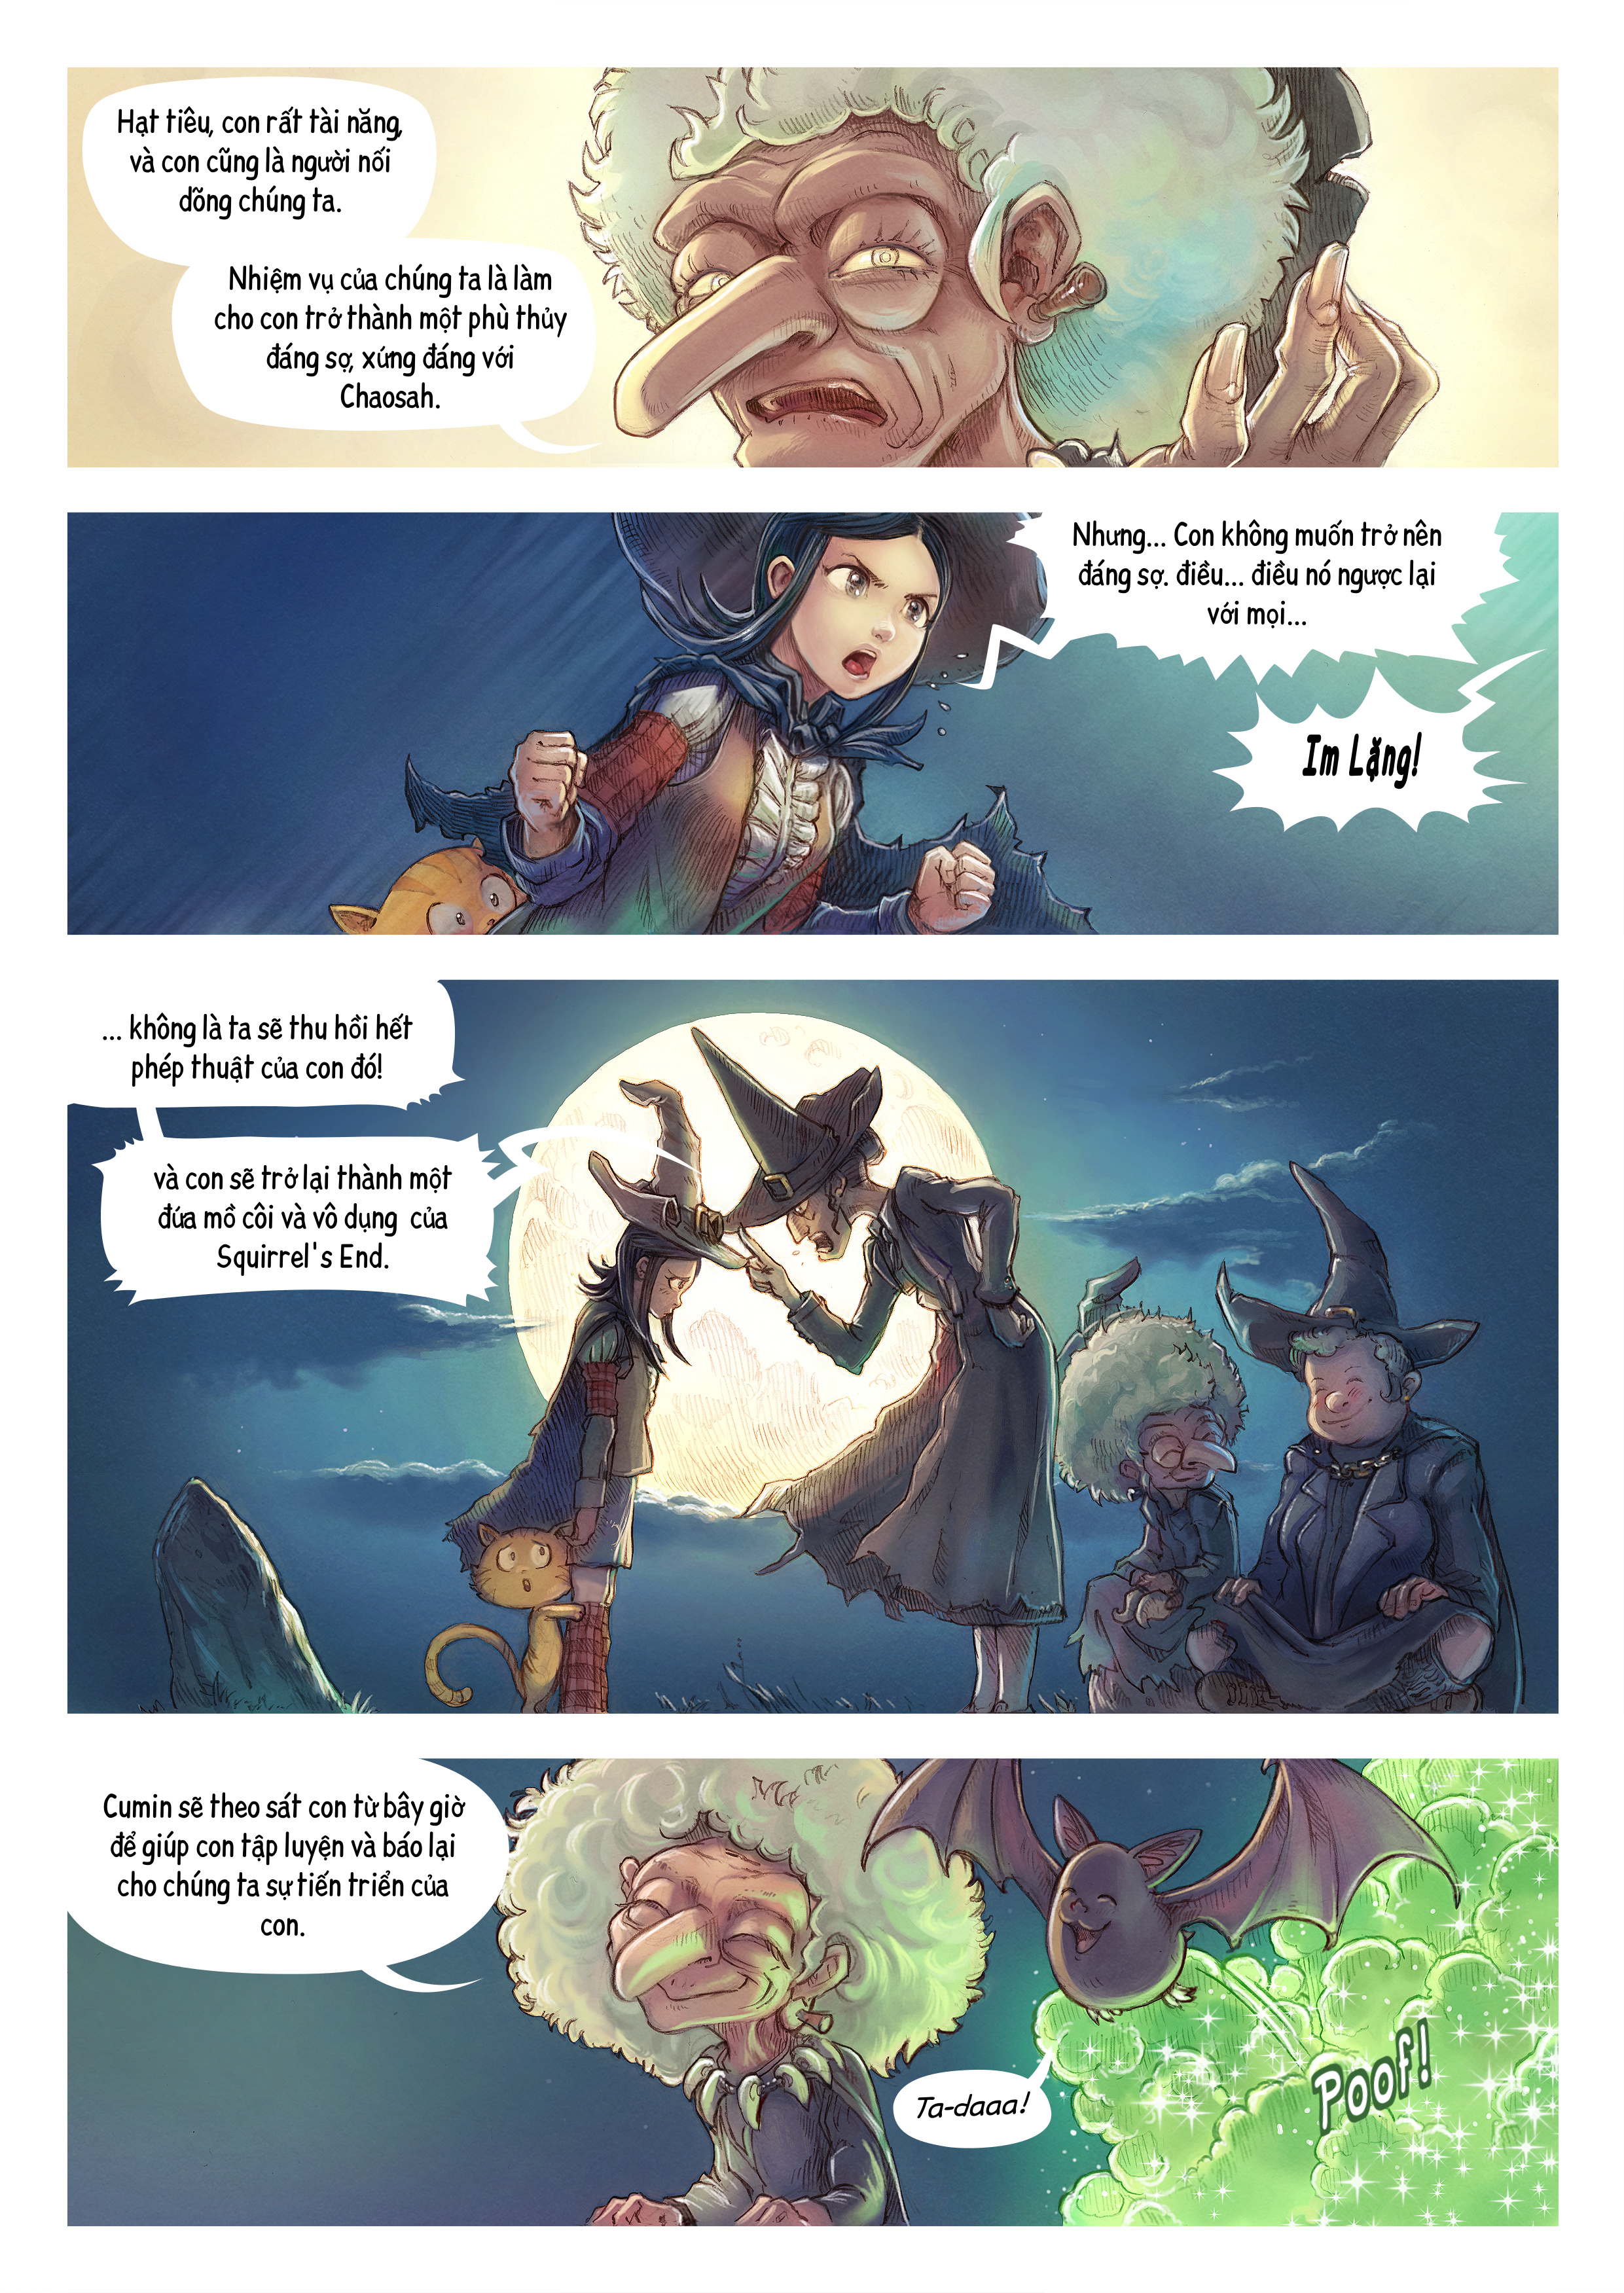 A webcomic page of Pepper&Carrot, Tập 11 [vi], trang 2